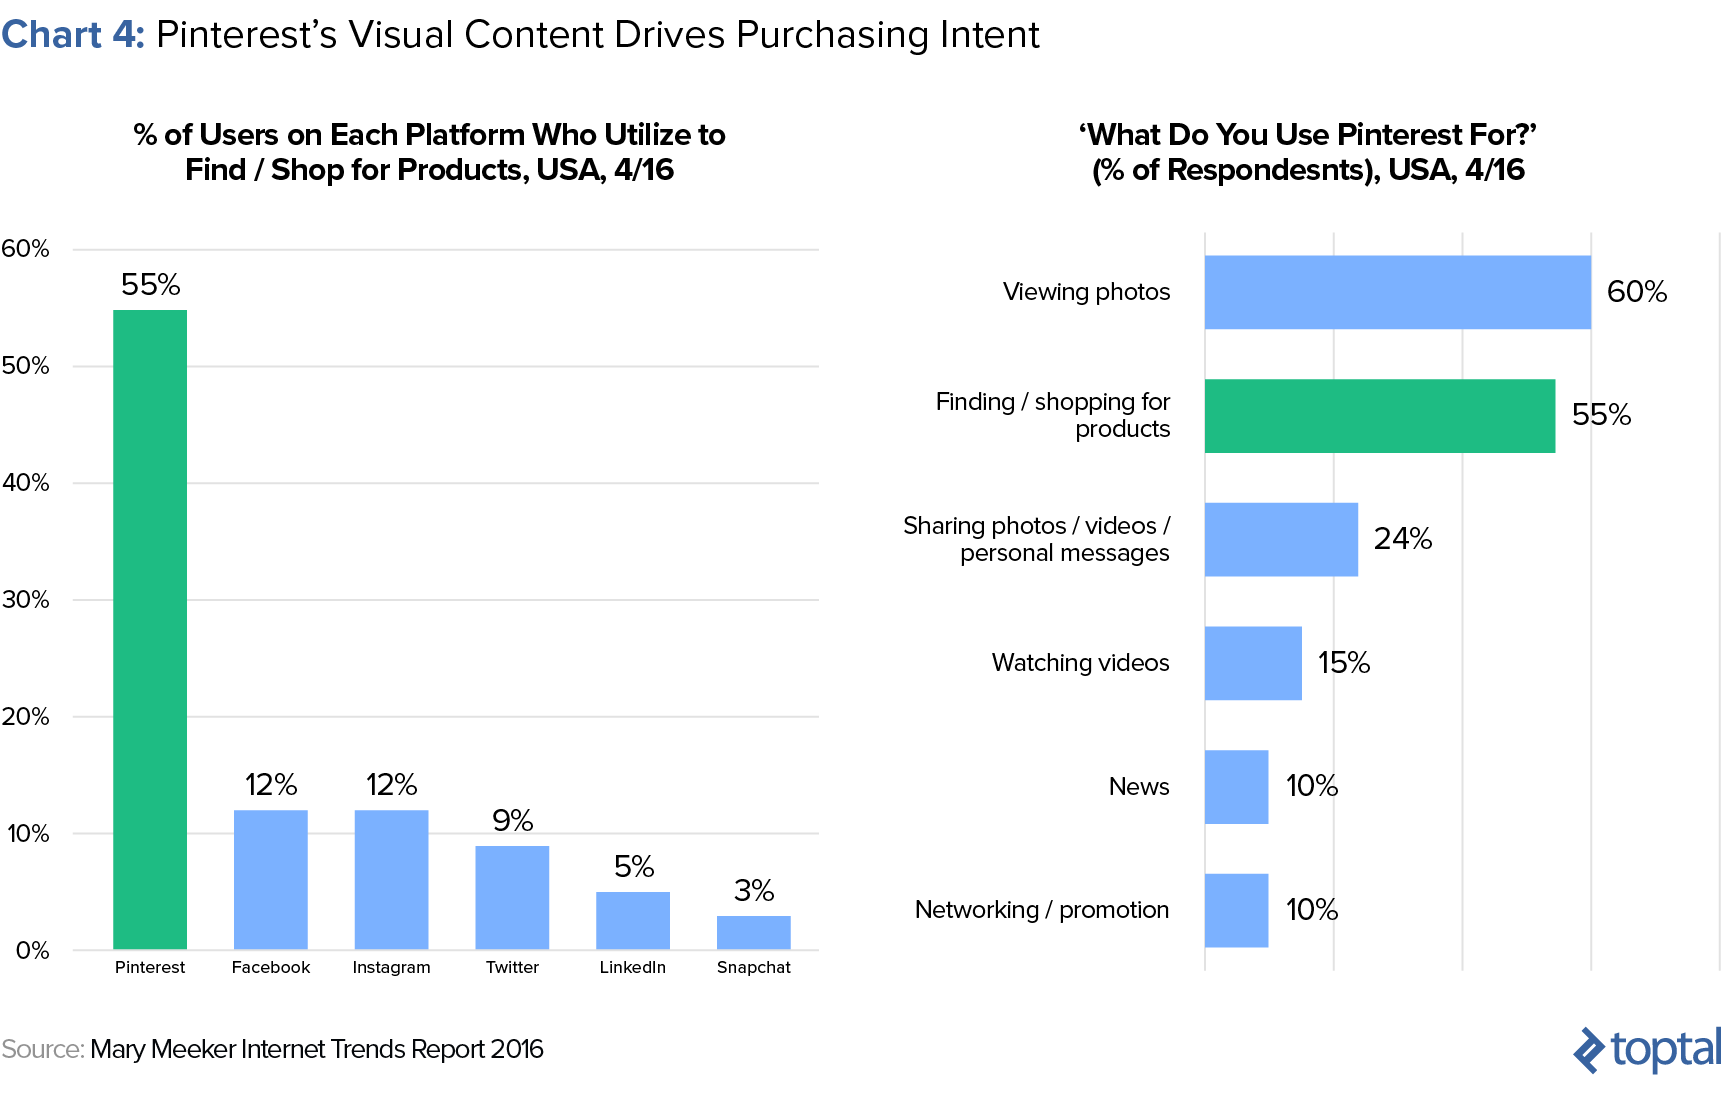 Chart 4: Pinterest's Visual Content Drives Purchasing Intent